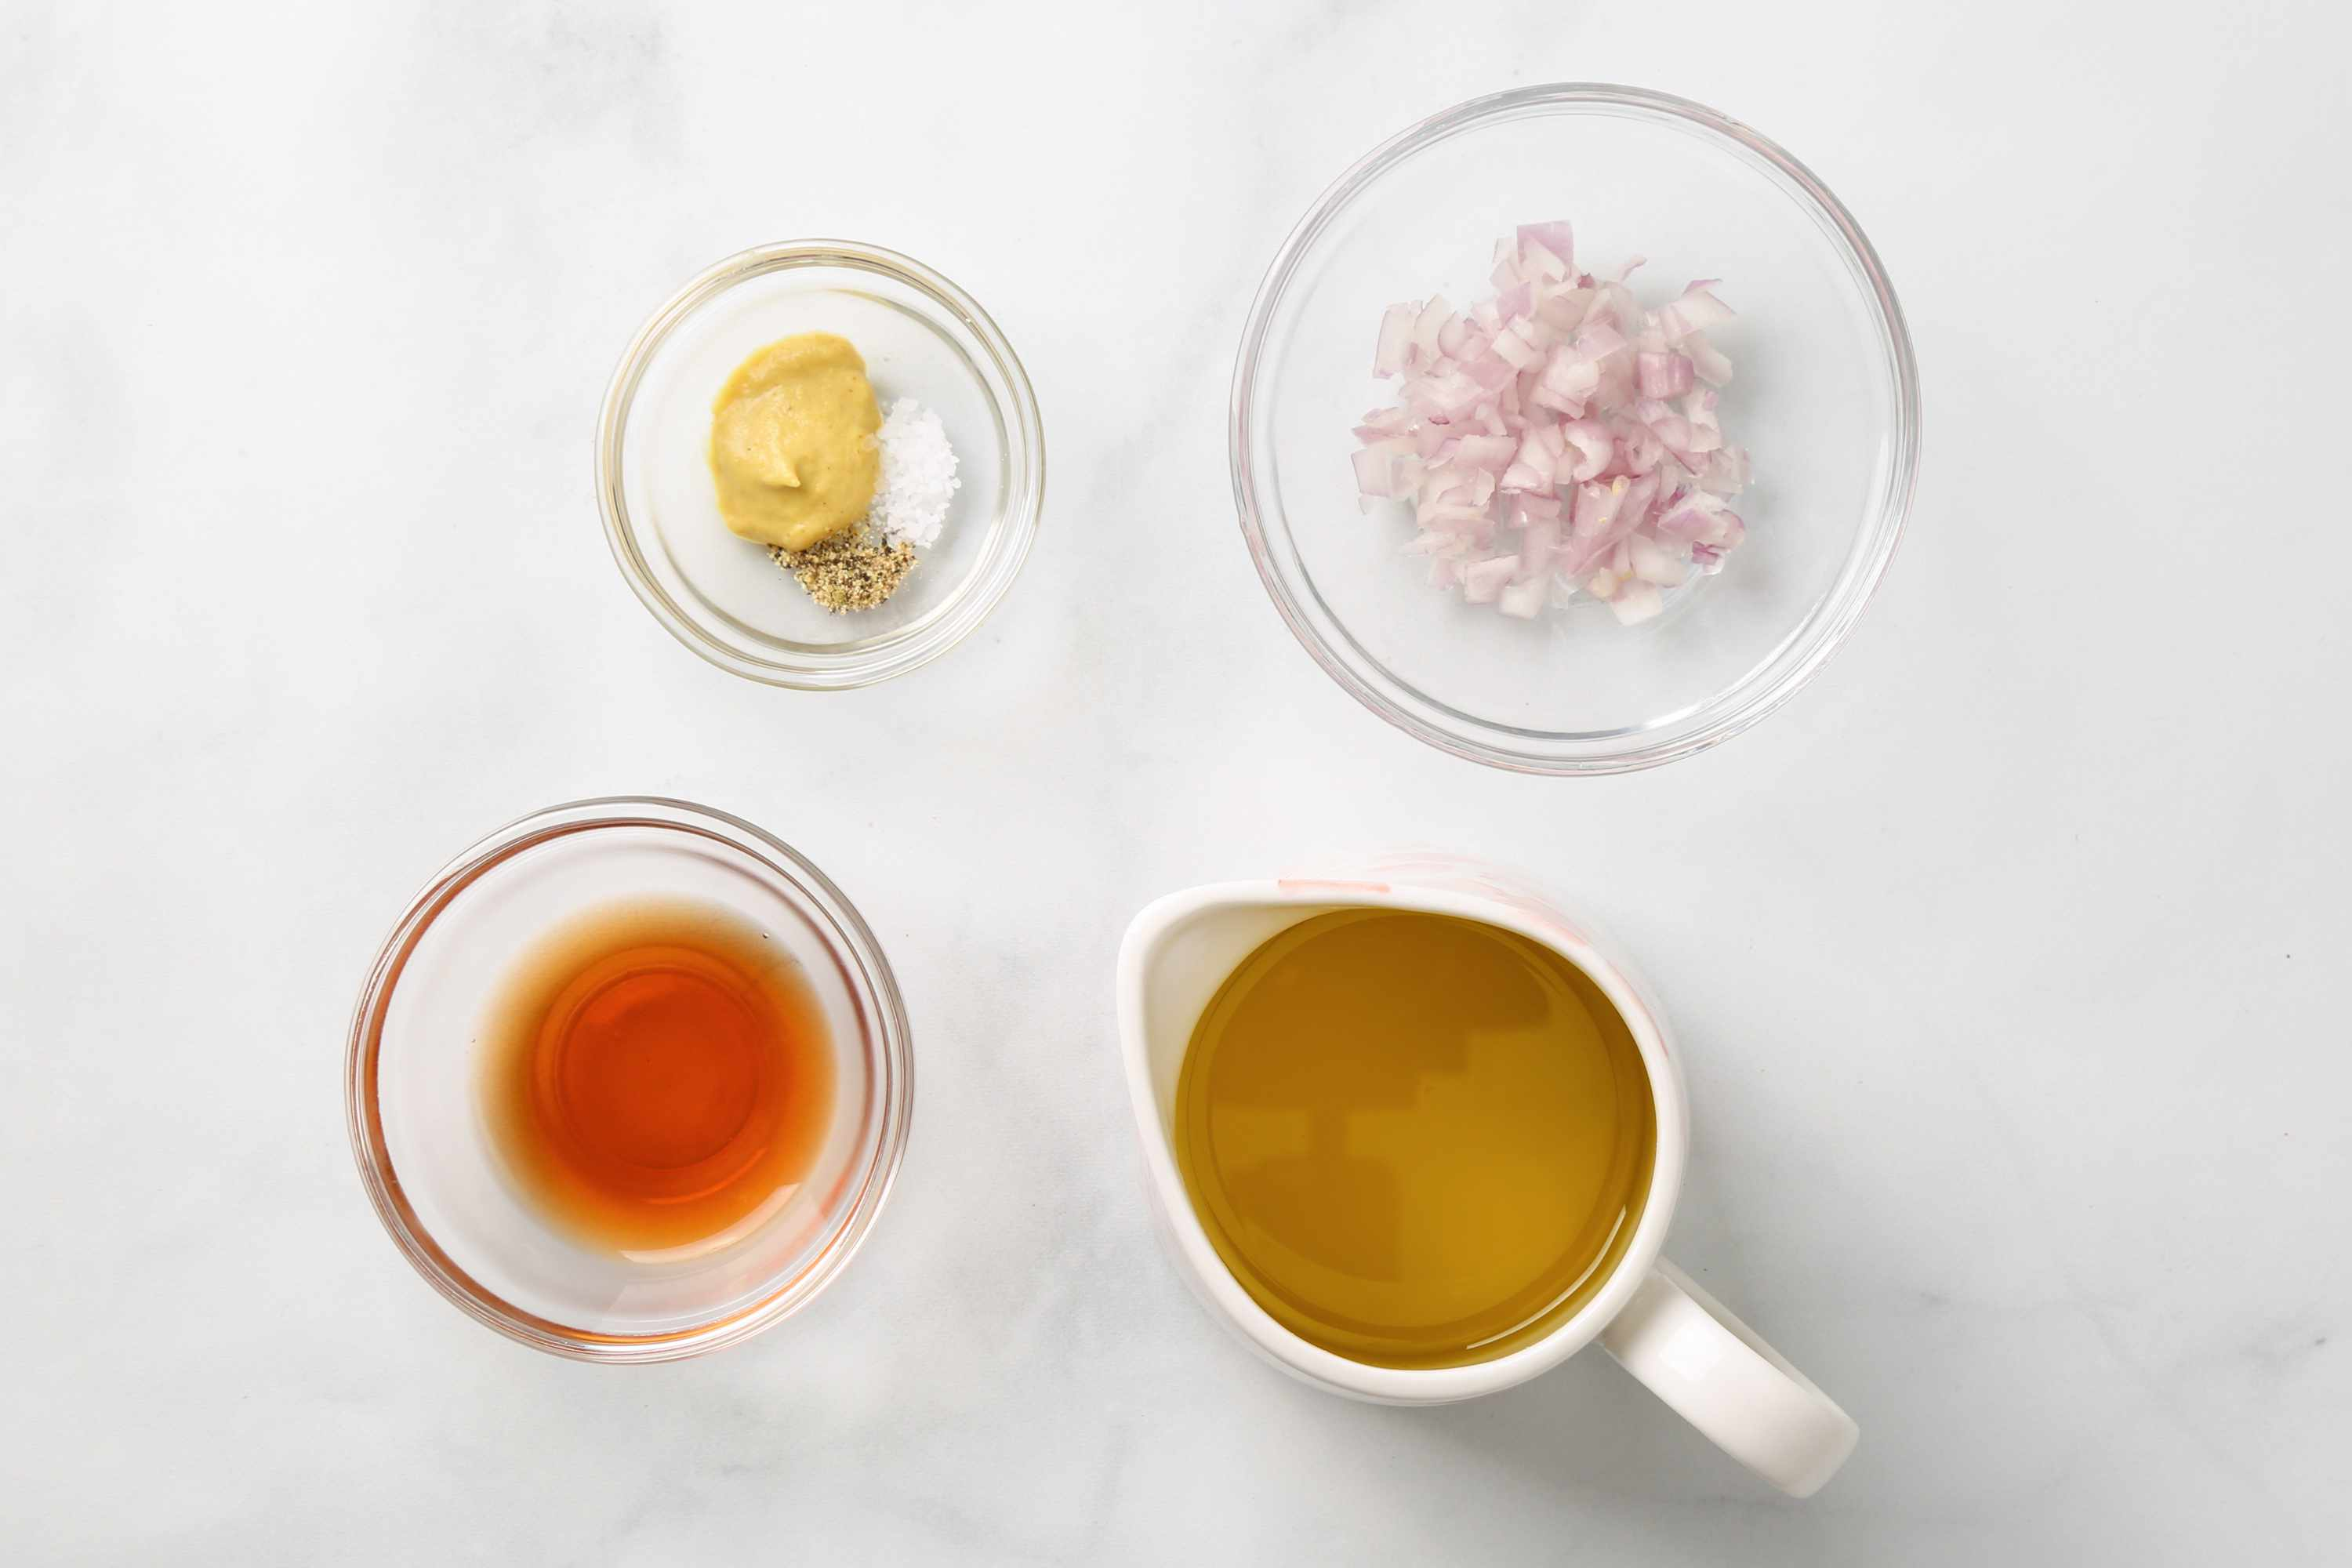 Classic French Vinaigrette ingredients